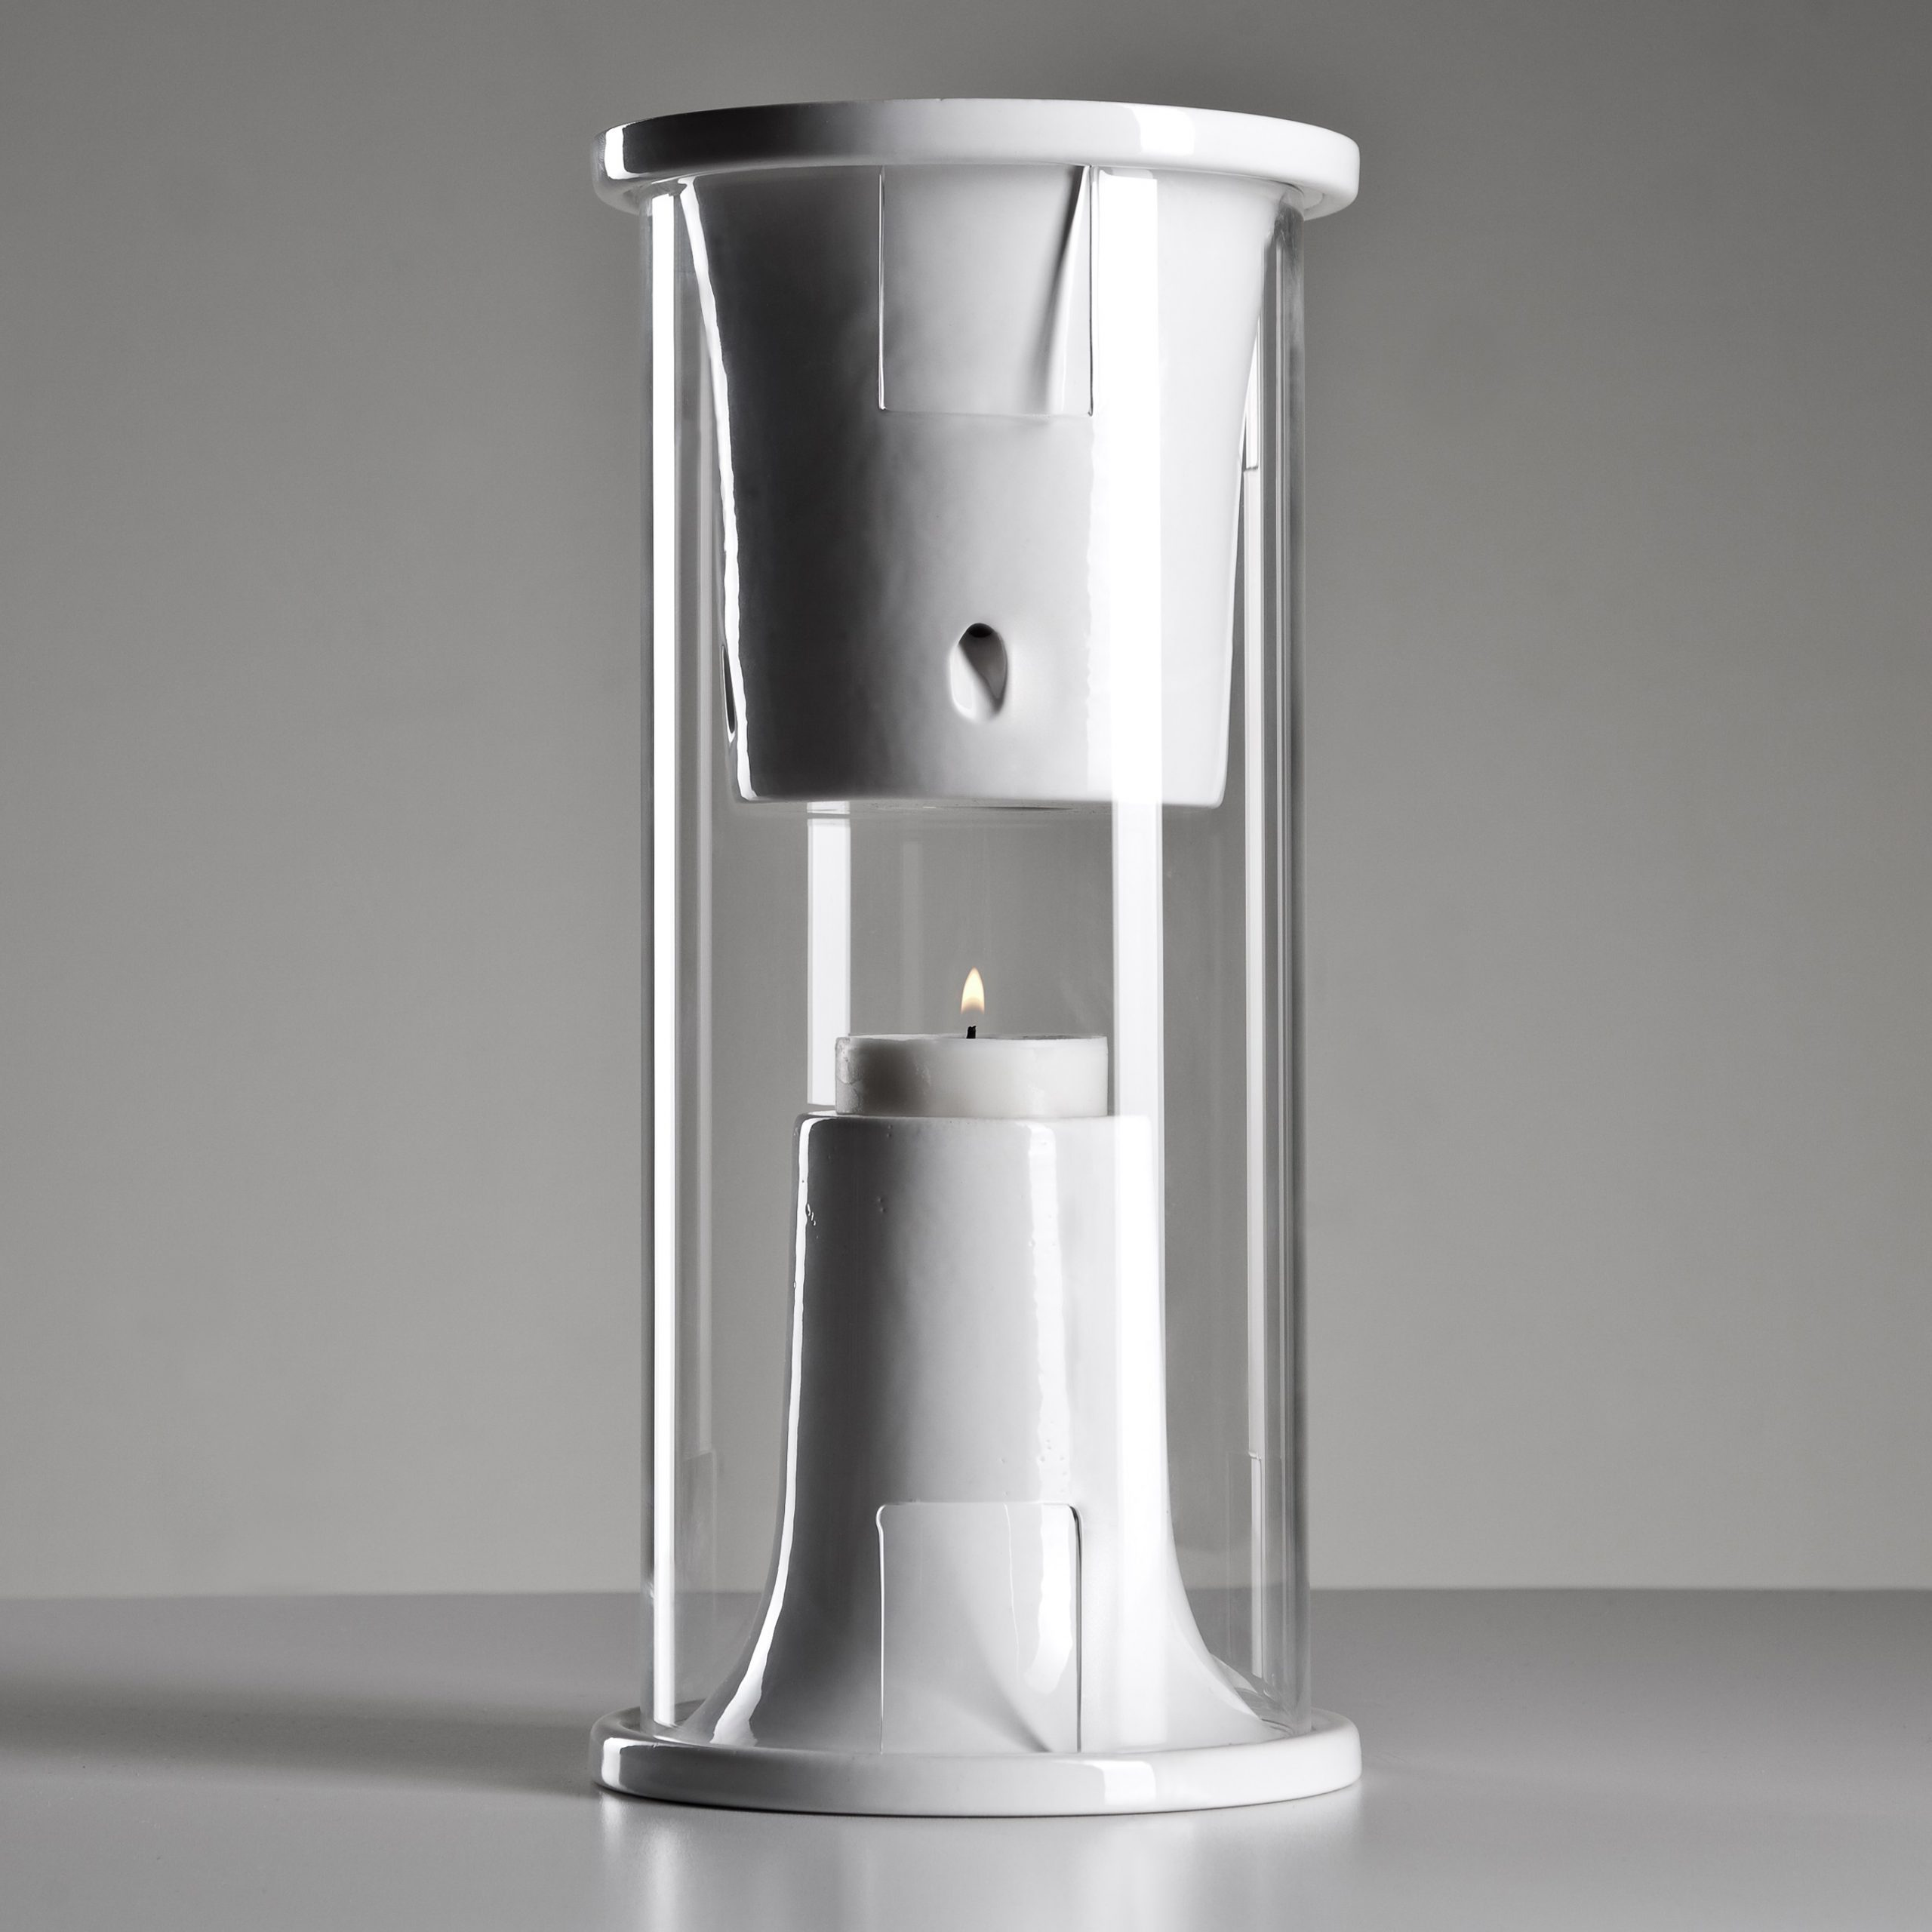 The Pelty Is An Unusual Bluetooth Speaker Powered By Candlelight